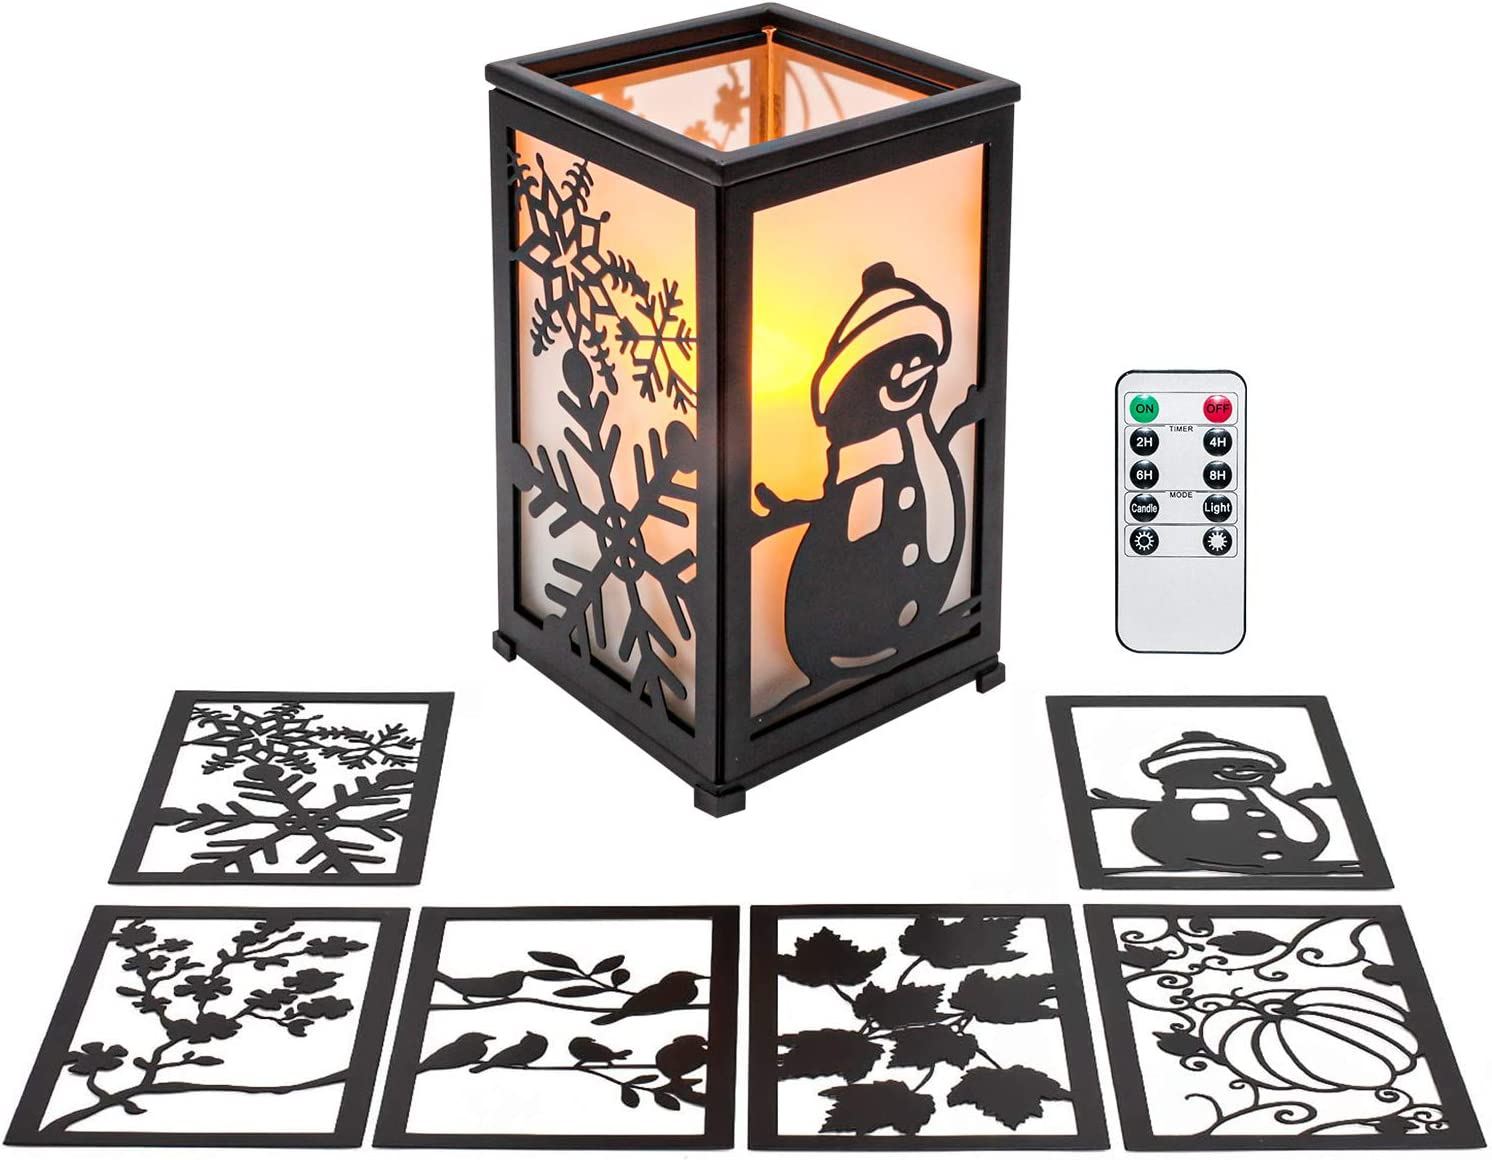 "GiveU Decorative Led Candle Lantern with Timer Rustic Candle Lantern with Twelve Magnetic Seasonal Themed Panels ,5 x 5 x 8.5"" Black"